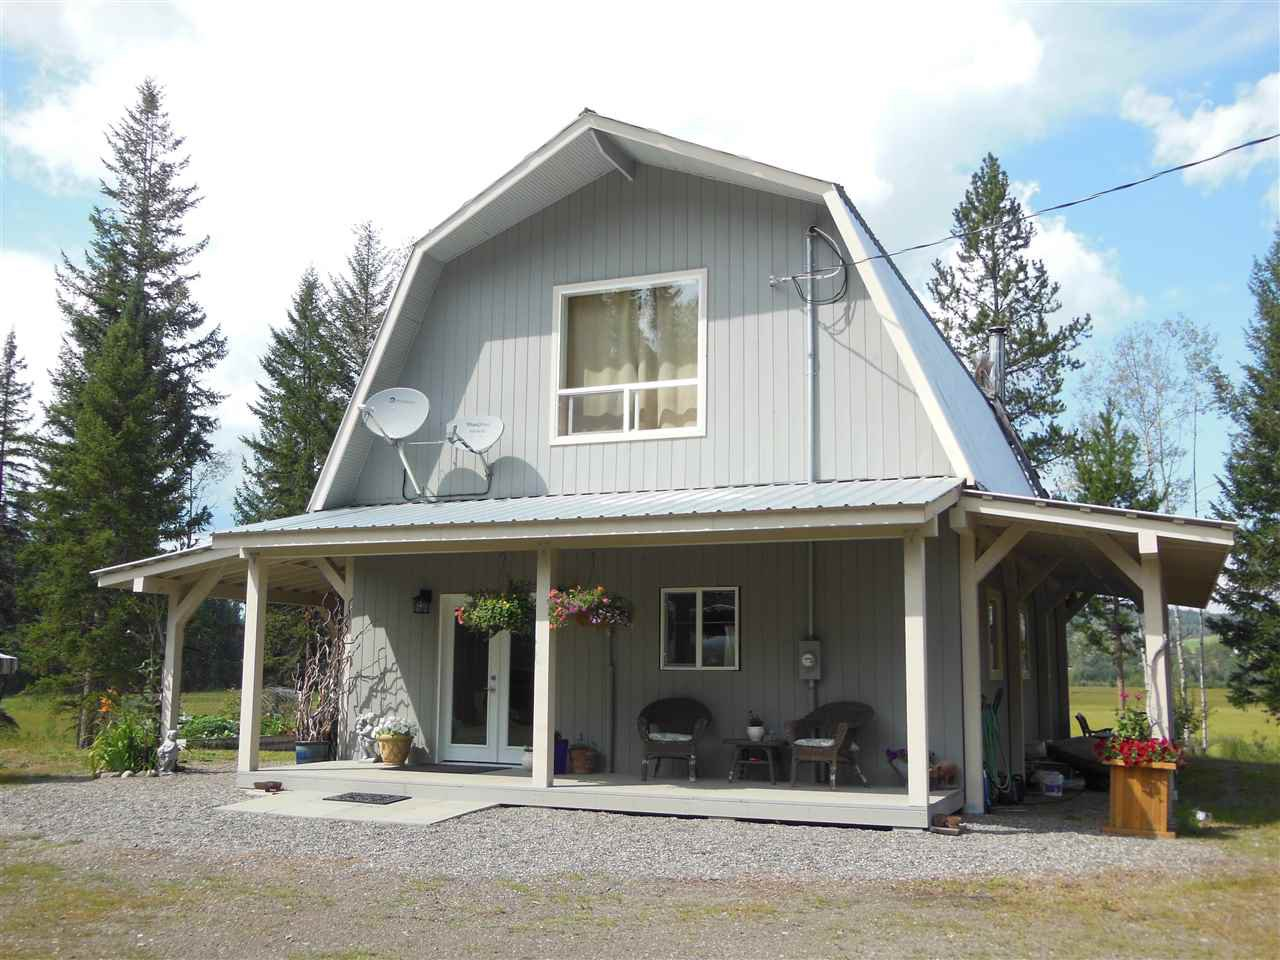 Photo 33: Photos: 3535 WESTWICK PIT Road: 150 Mile House House for sale (Williams Lake (Zone 27))  : MLS®# R2488772